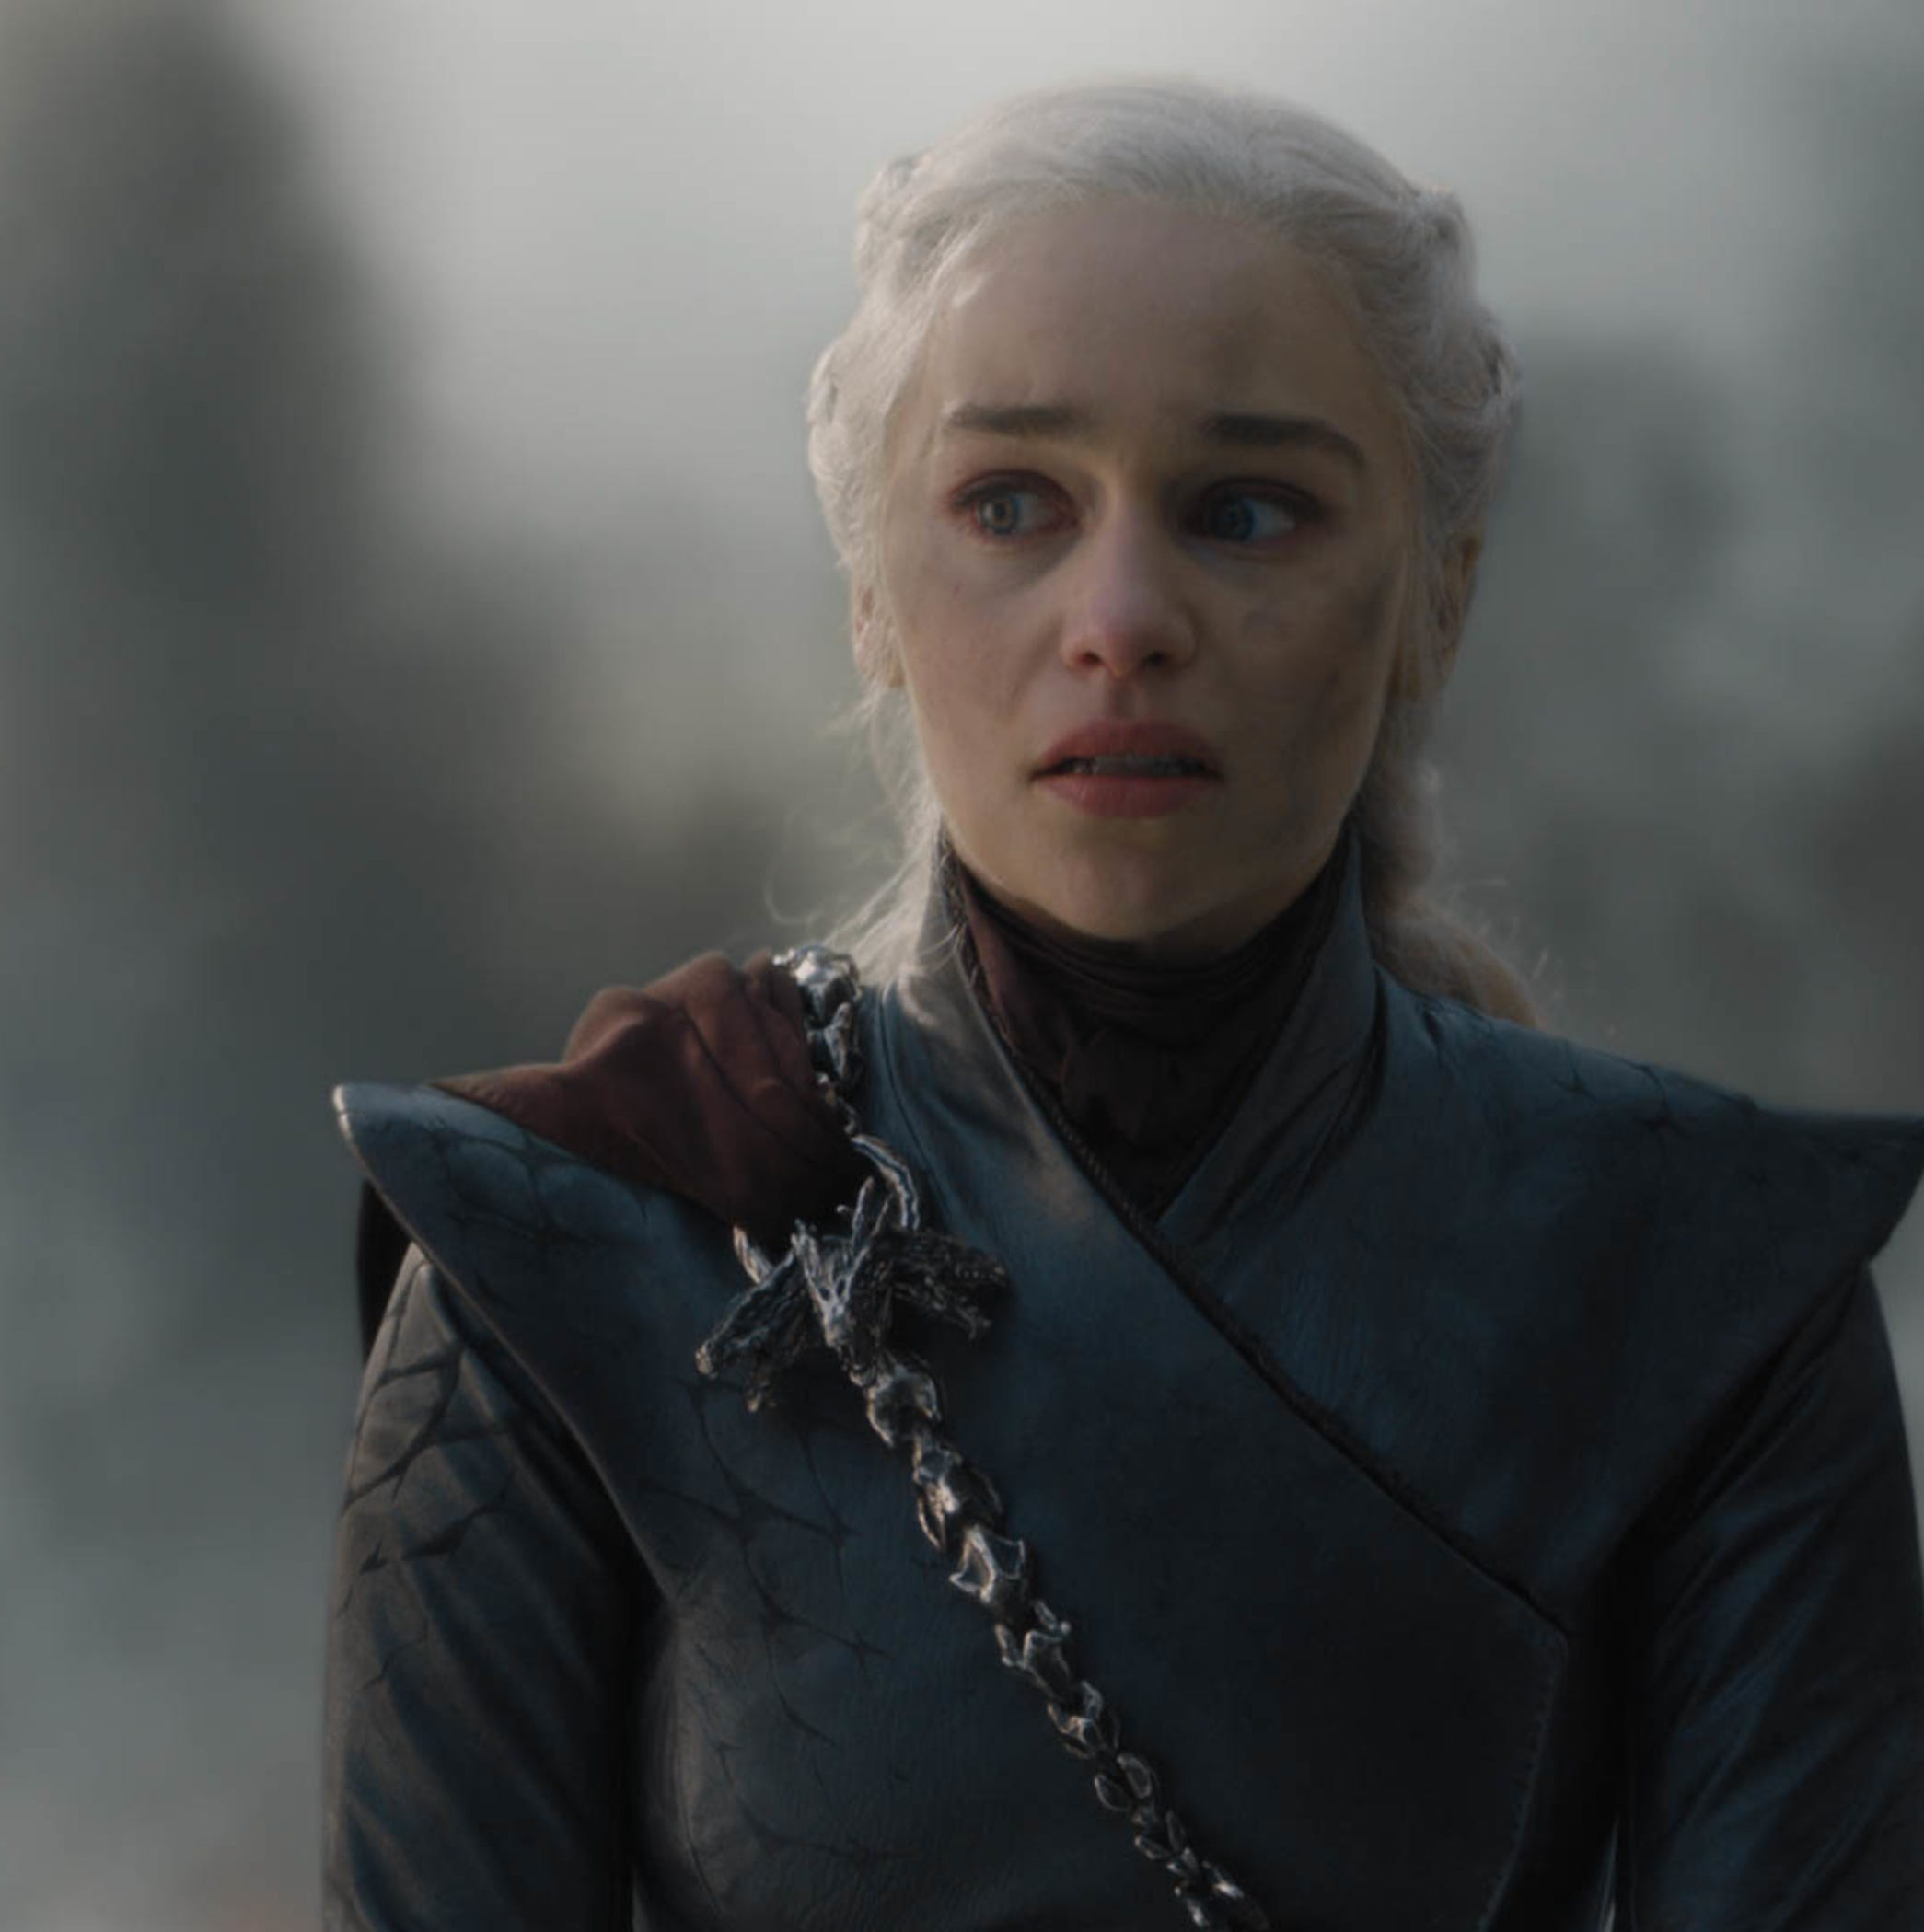 'Game of Thrones': Why a woman should win, not Jon Snow